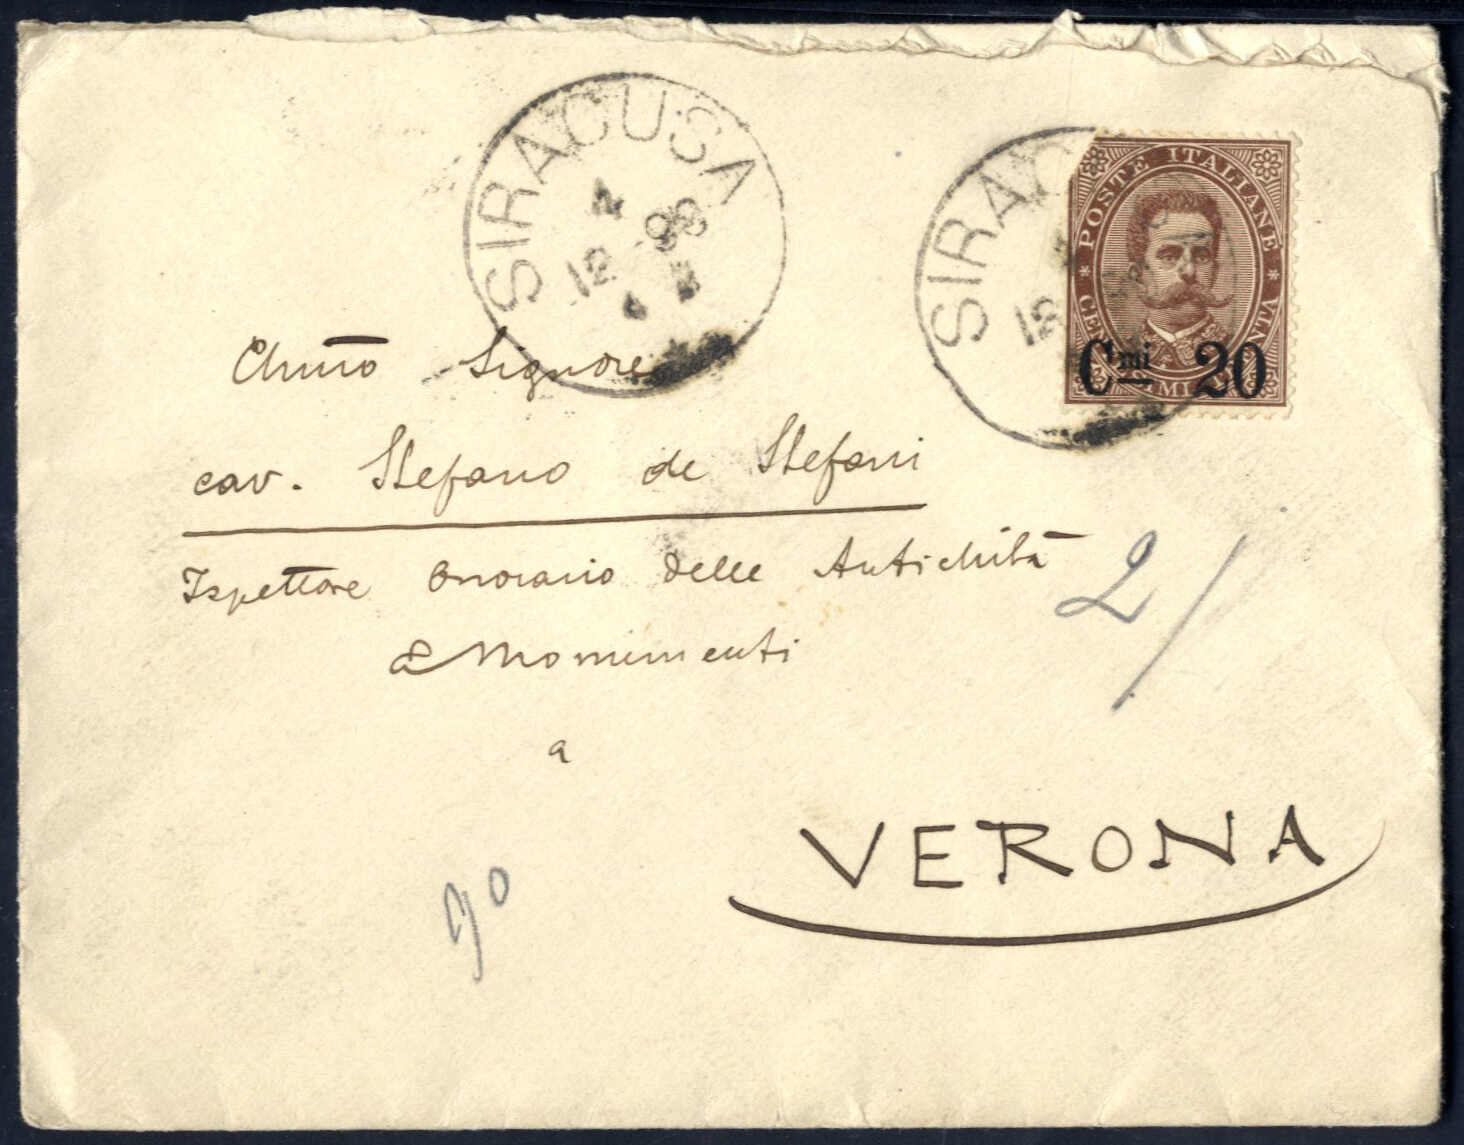 Lot 1552 - europe Italian Kingdom -  Viennafil Auktionen Auction #66 Worldwide Mail Auction: Italy, Austria, Germany, Europe and Overseas